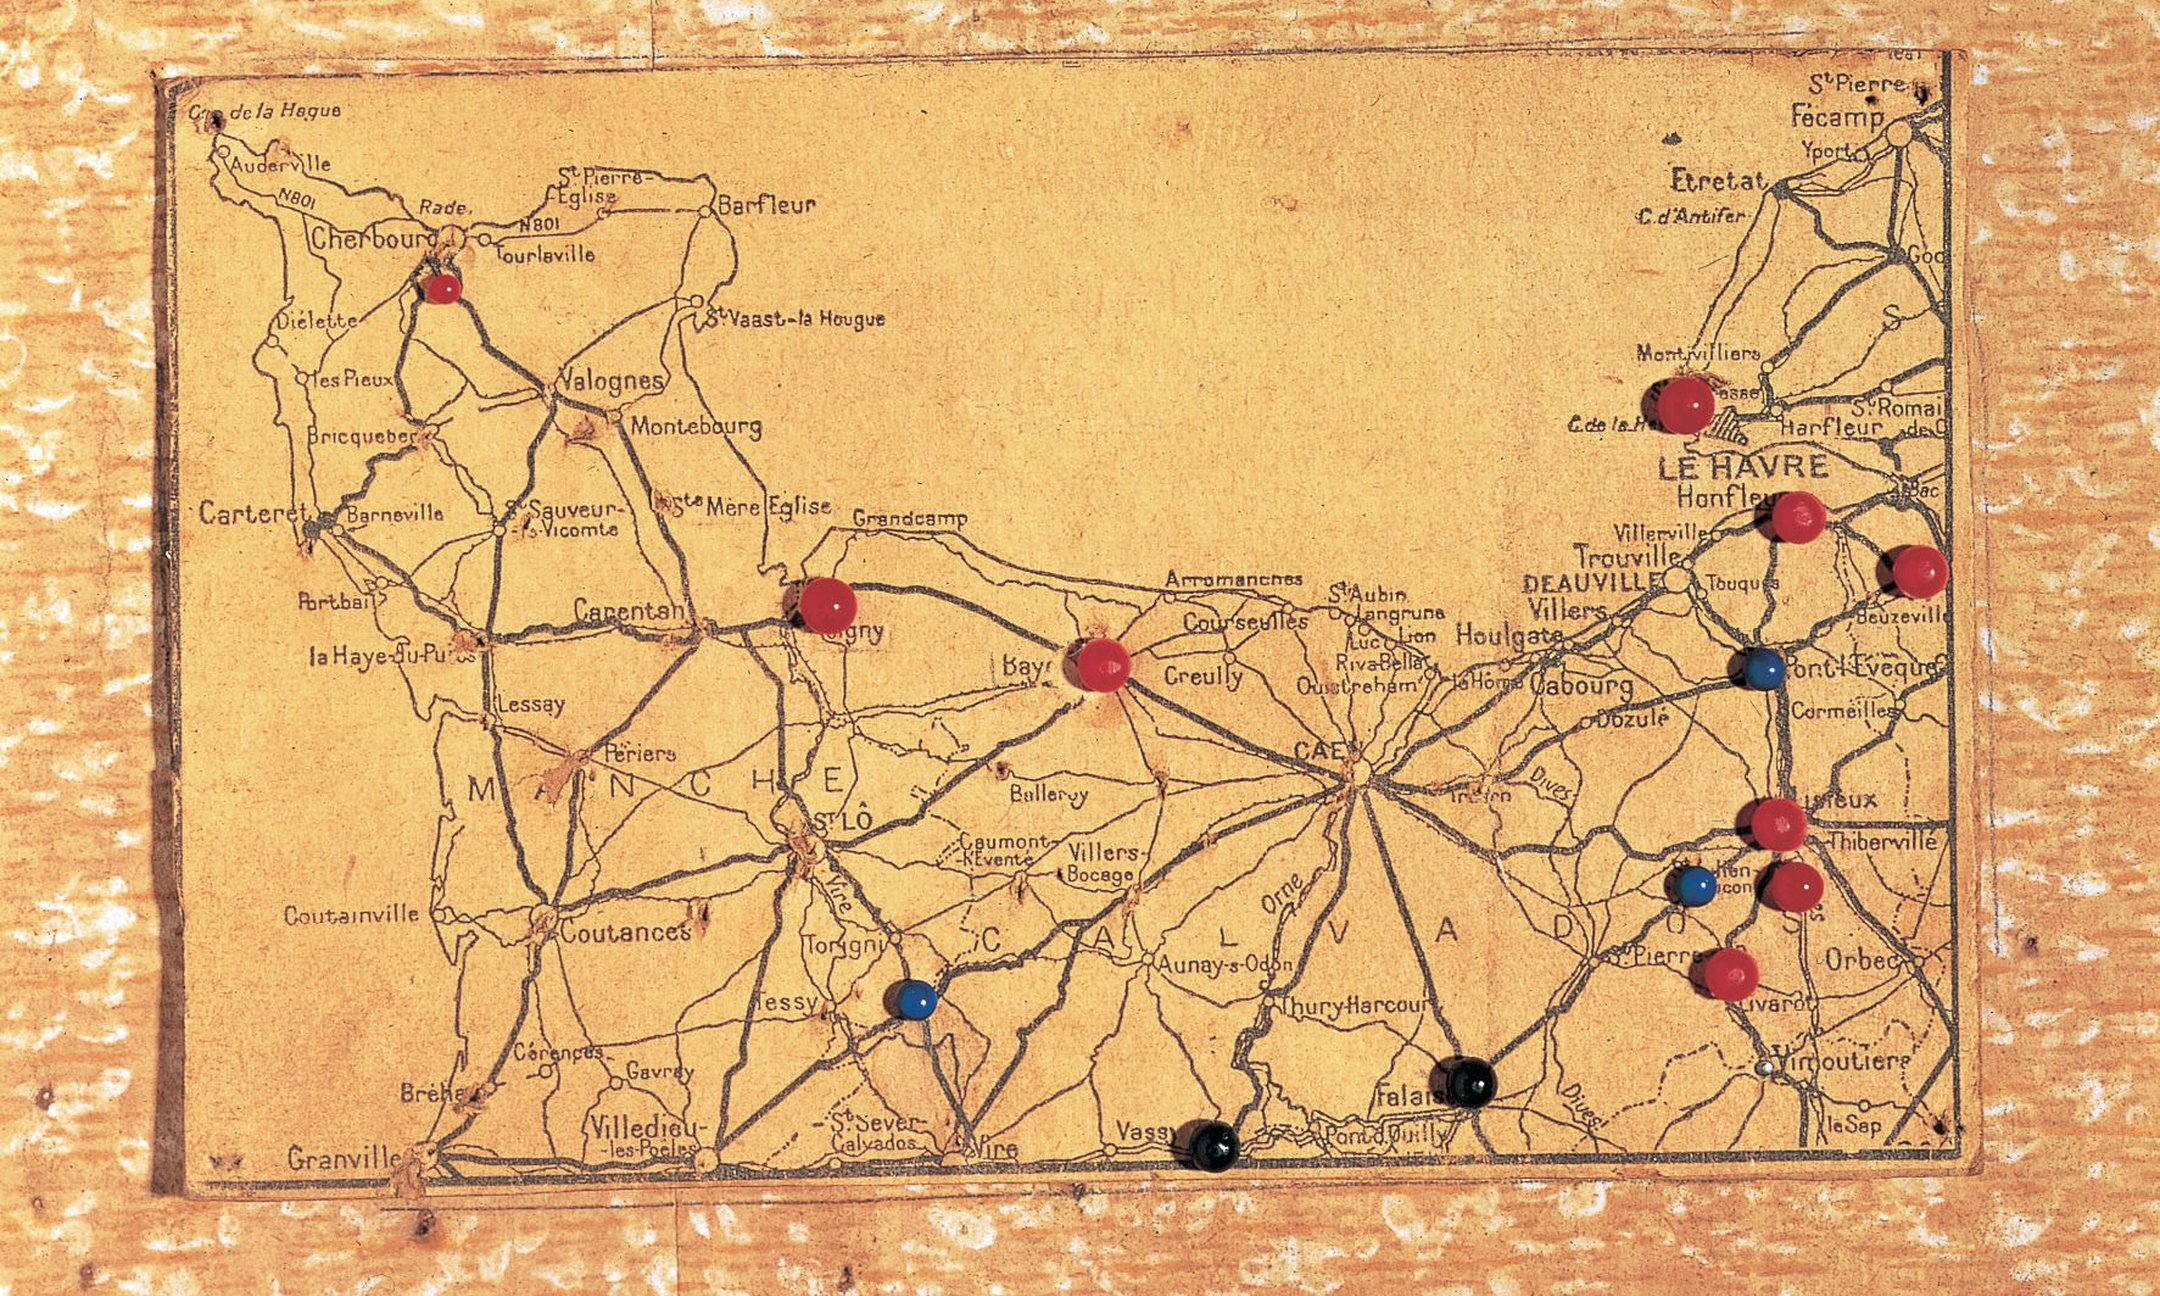 After the Allied landings in France on 6 June 1944, Otto keeps track of their progress by sticking pins in this small map.